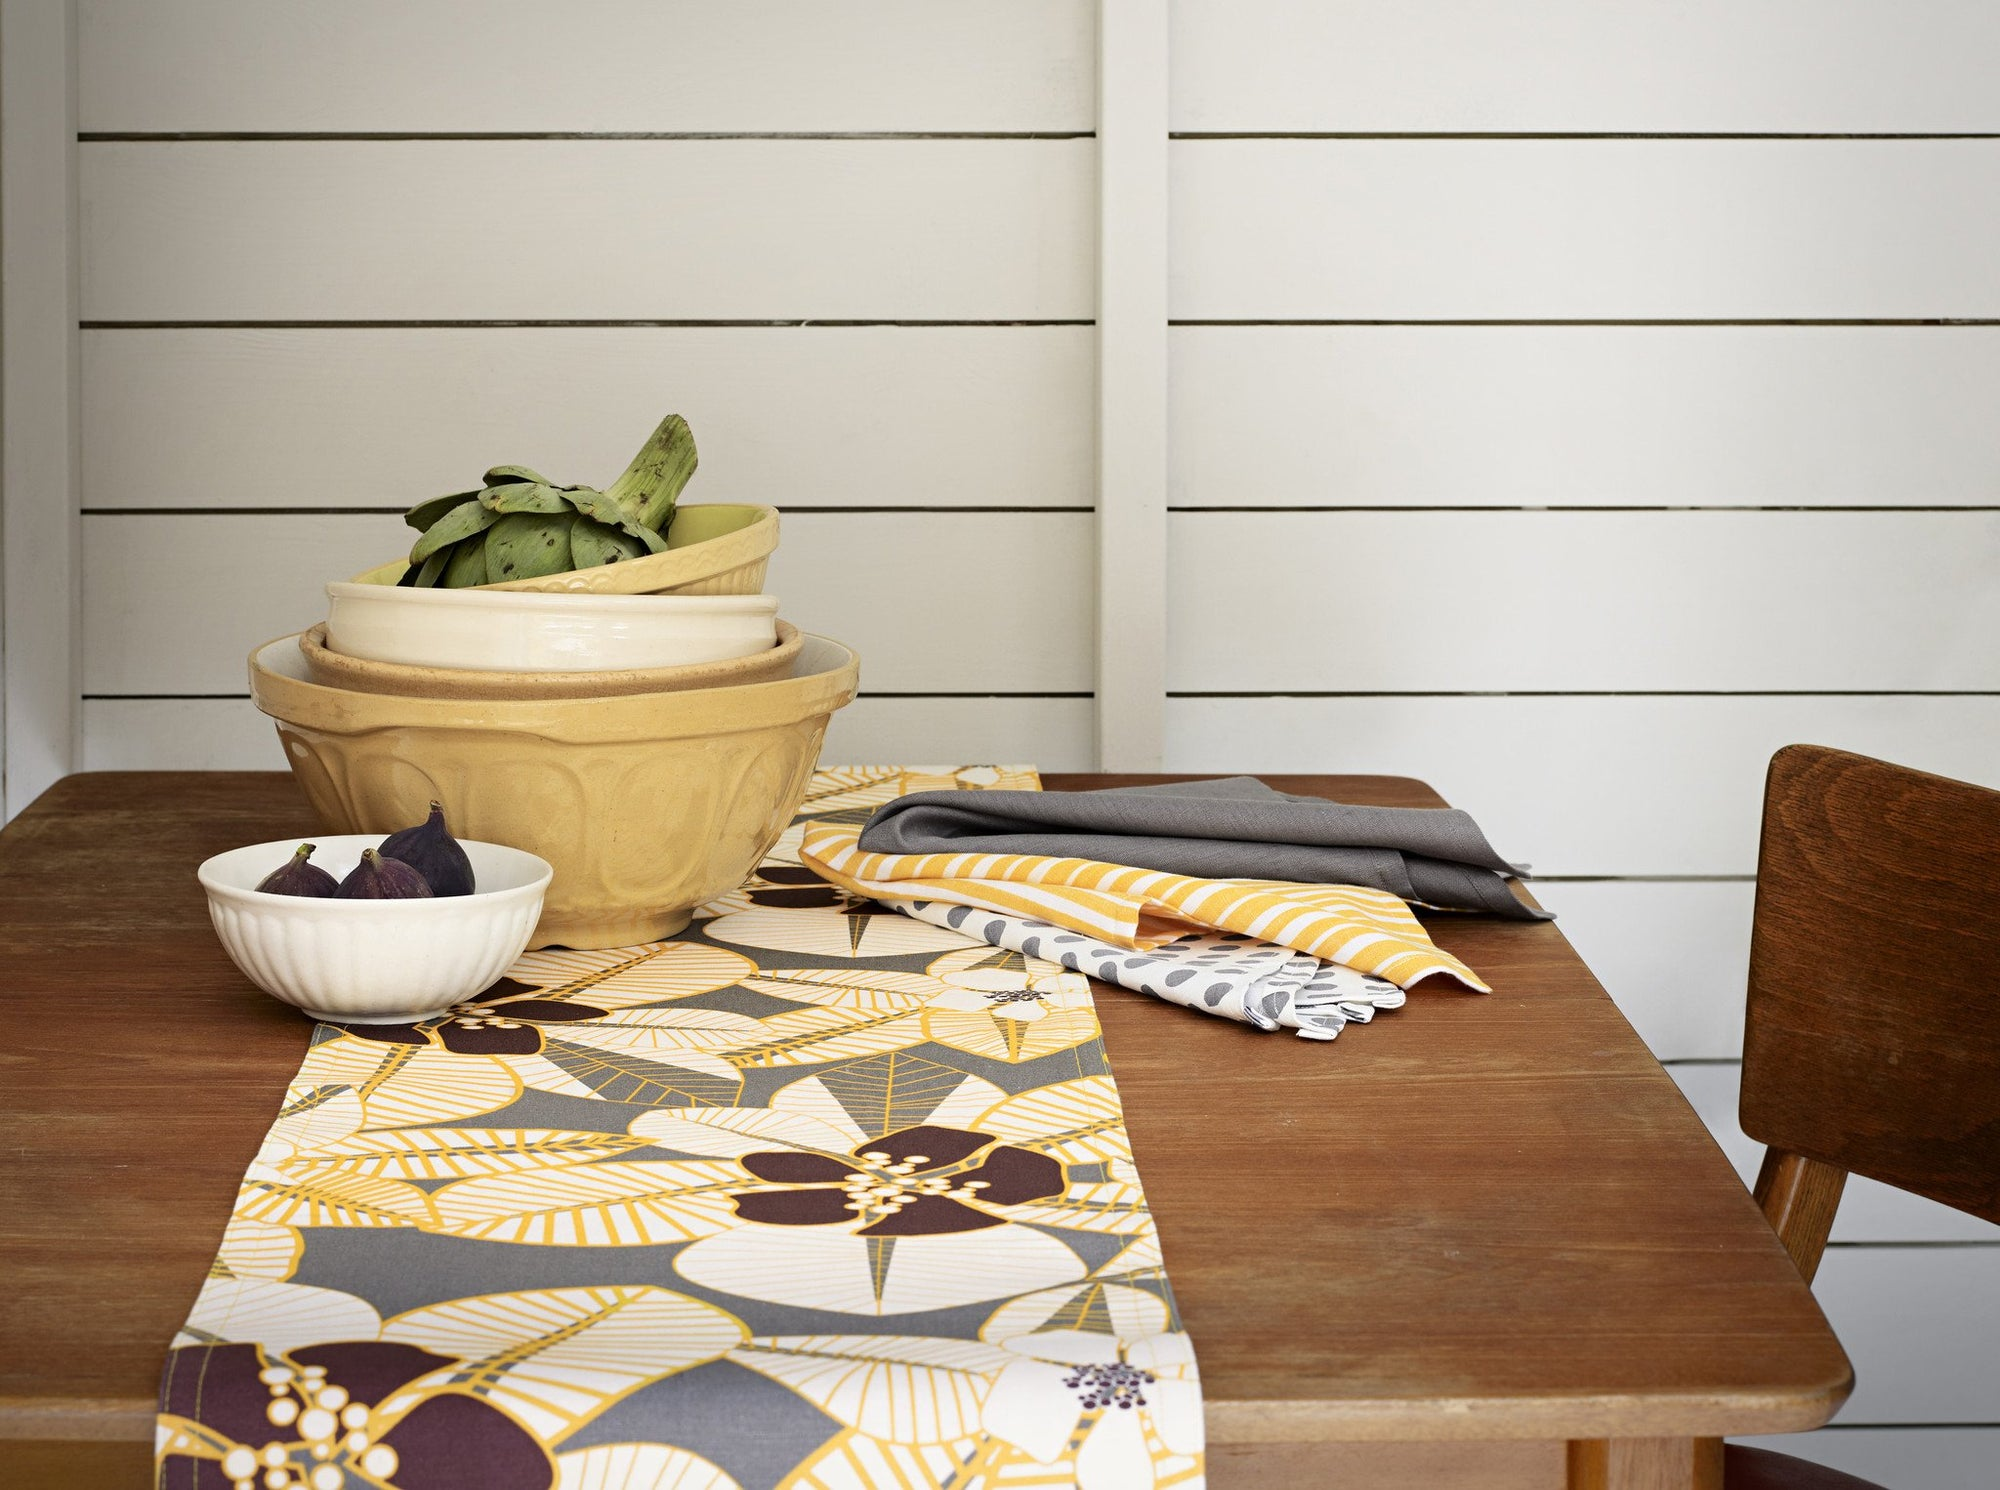 Cotton linen tablecloths, napkins and table runners in bold, modern patterns and stripes in shades of yellow. Ships from Canada worldwide including the USA